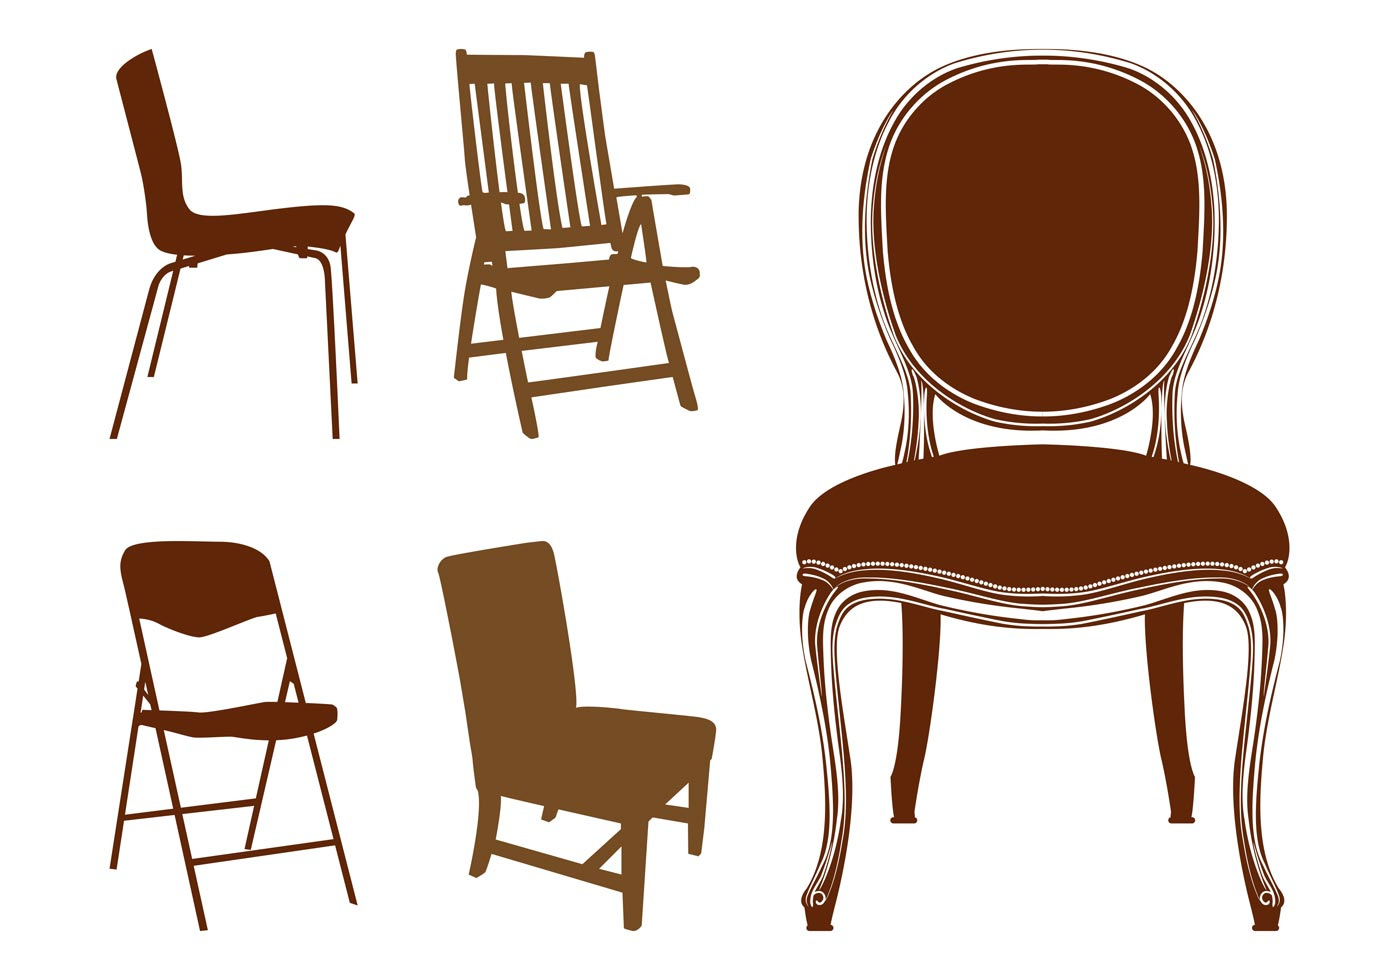 Chairs Silhouettes Download Free Vector Art Stock